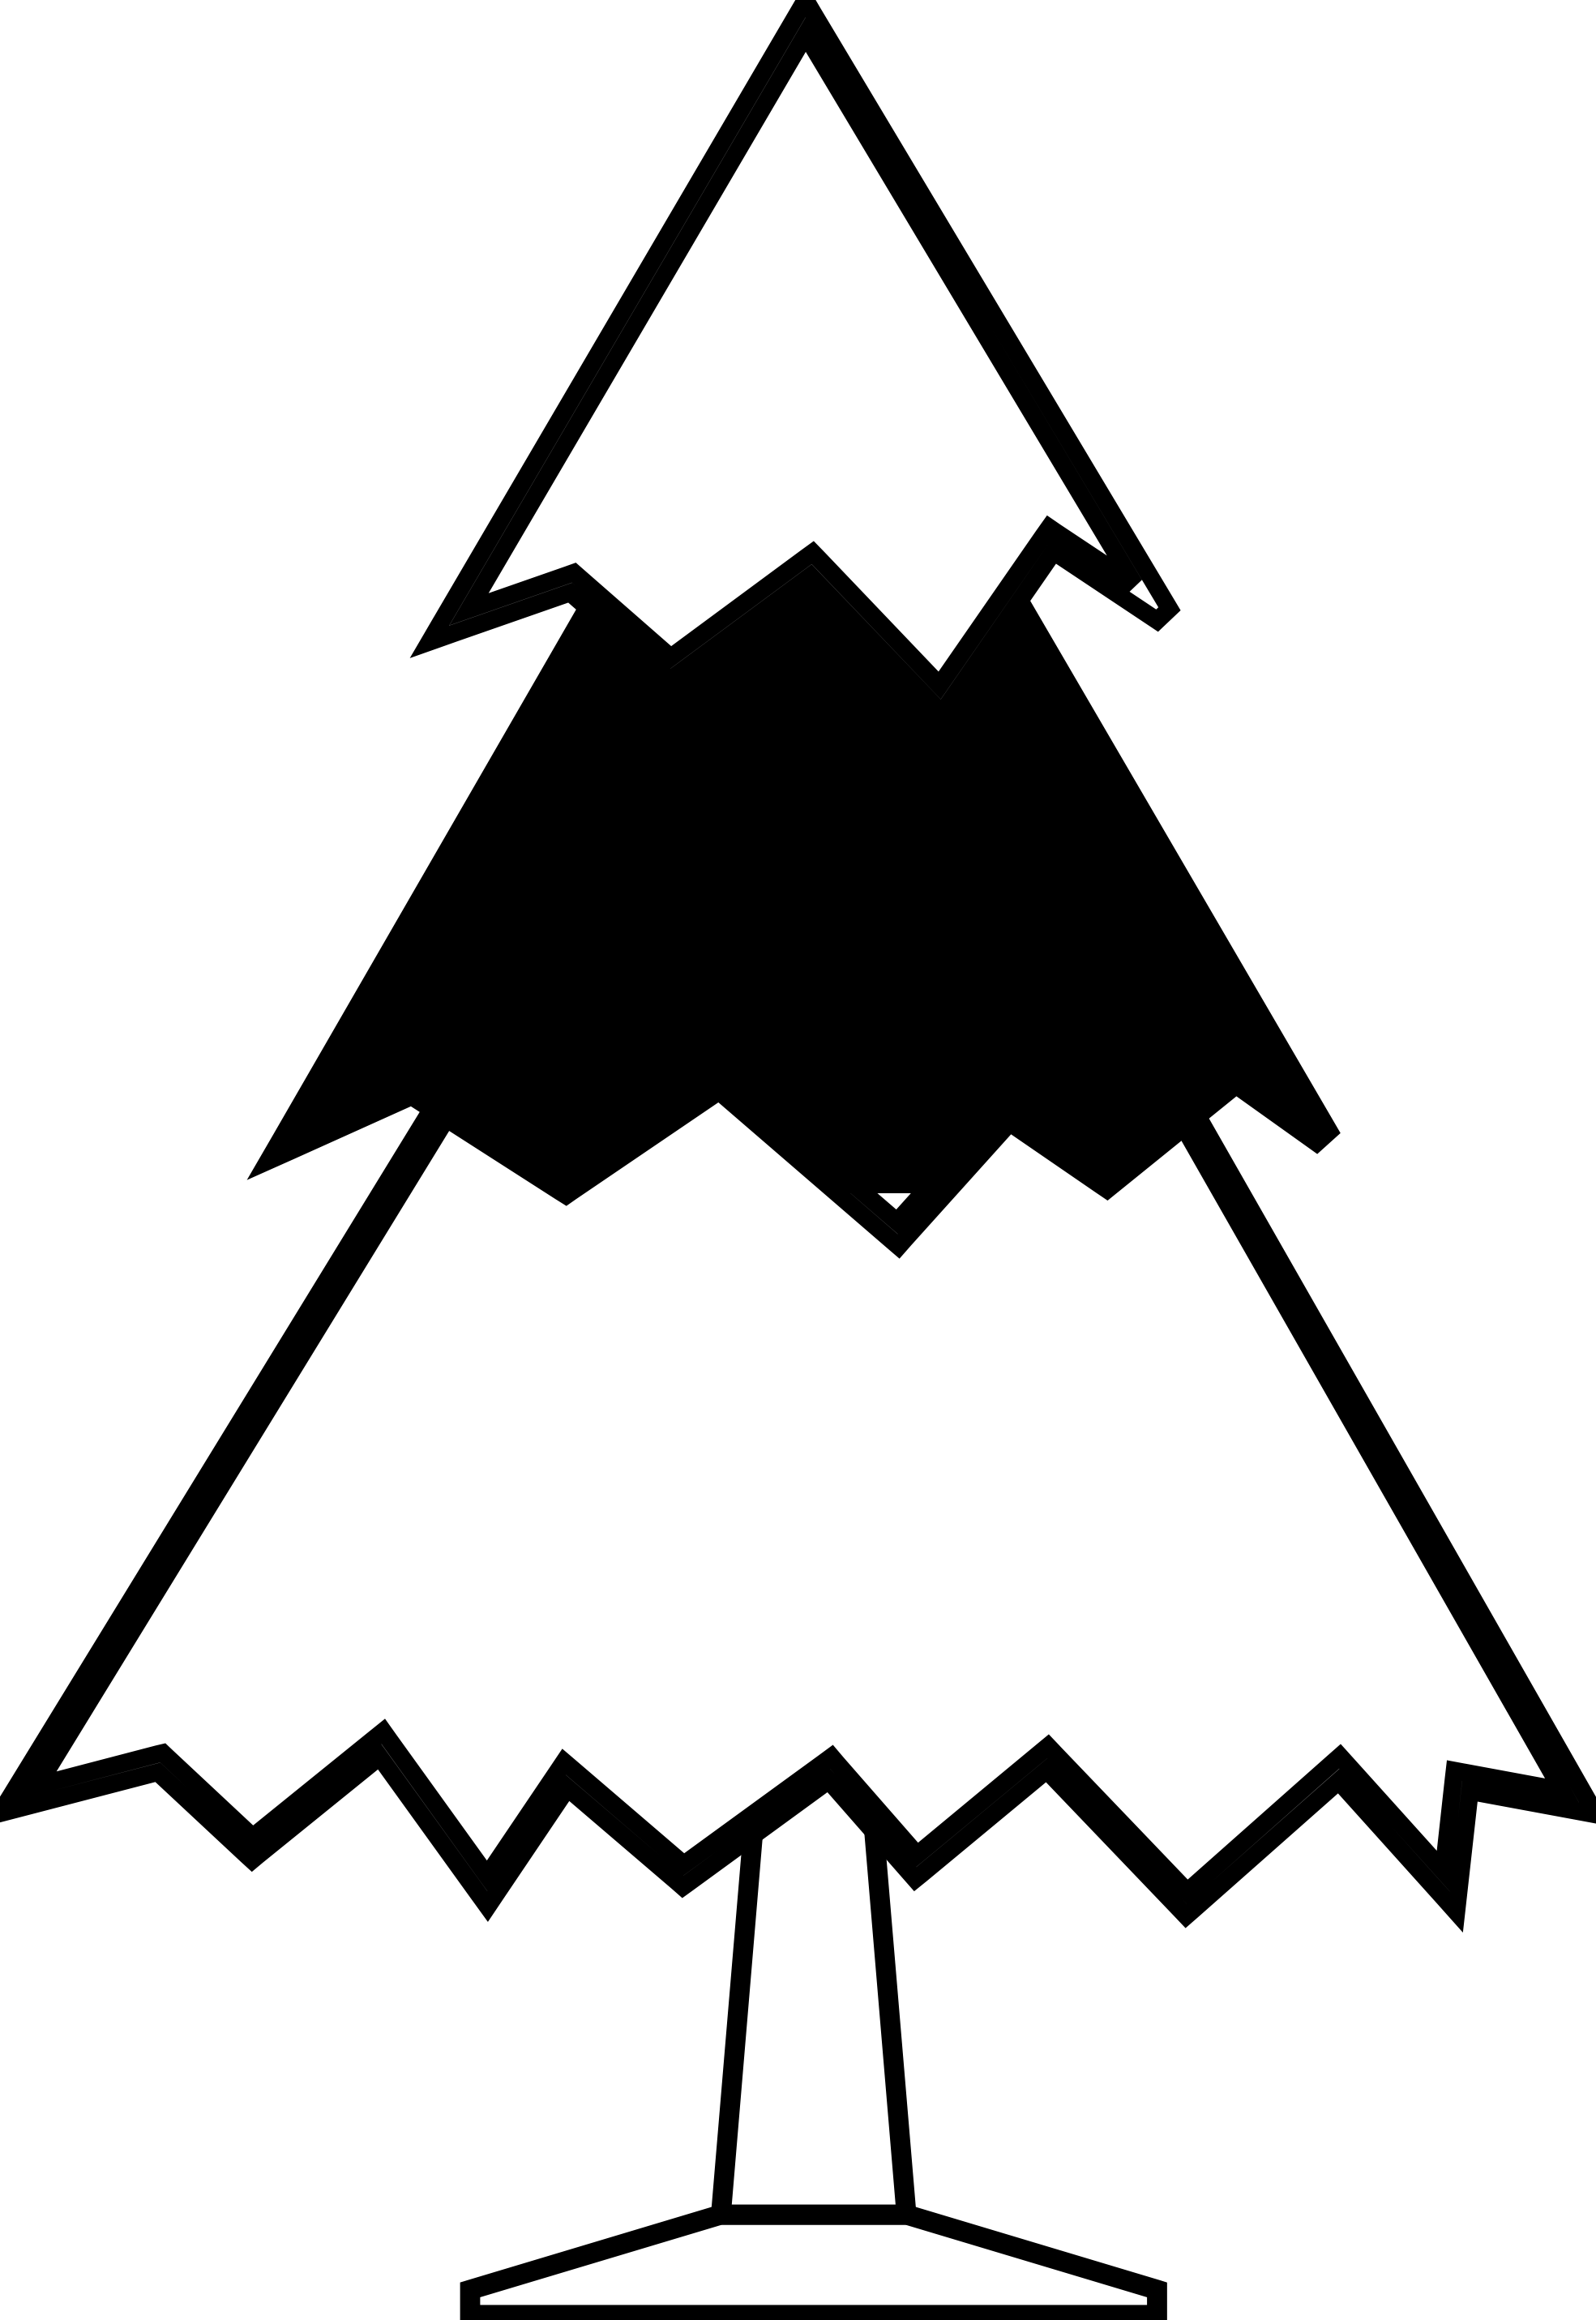 Christmas tree black clipart png black and white stock Present black and white christmas present clipart black and white ... png black and white stock